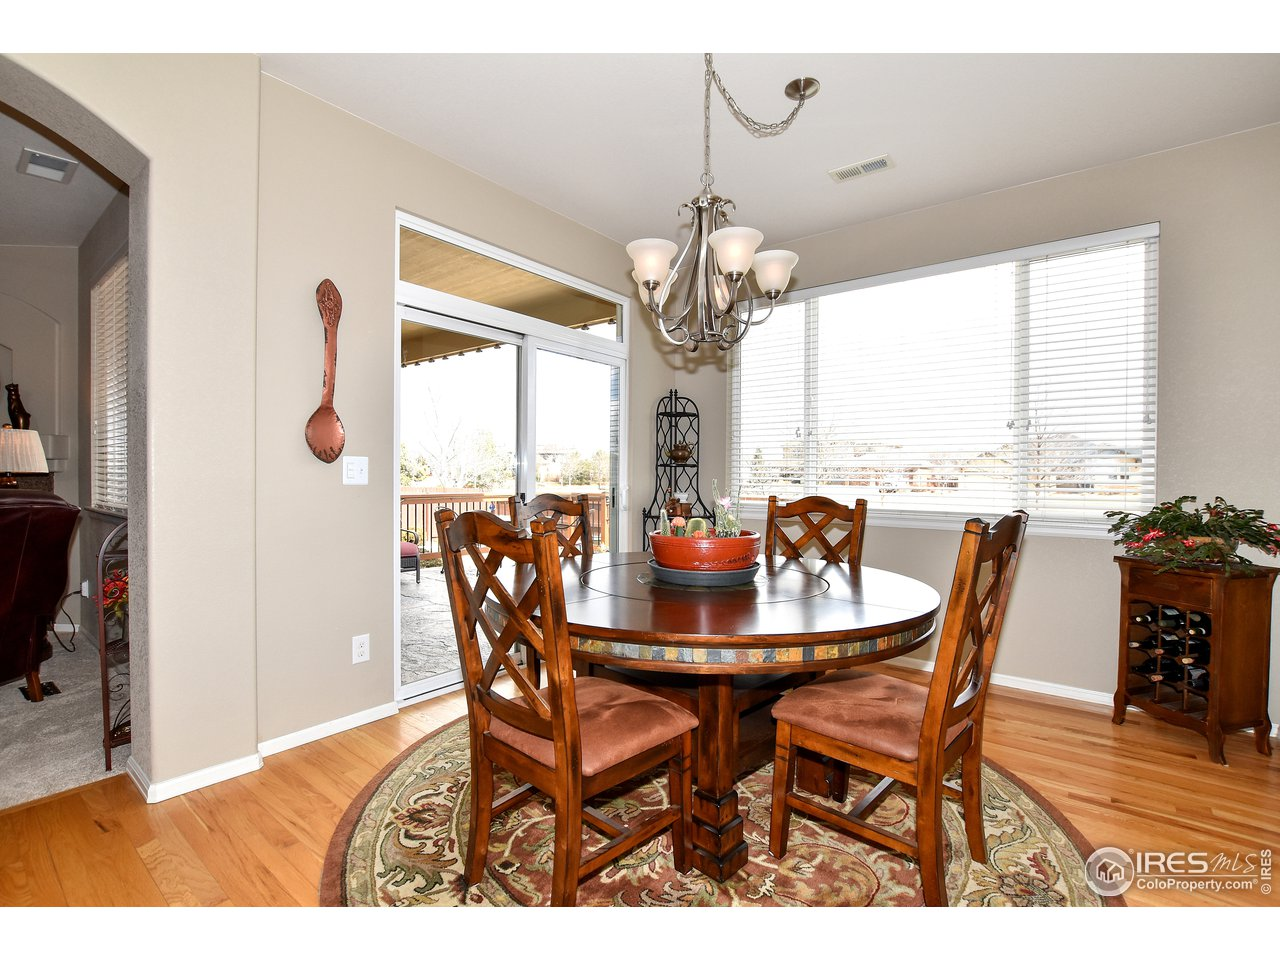 Spacious dining room with access to outdoor patio